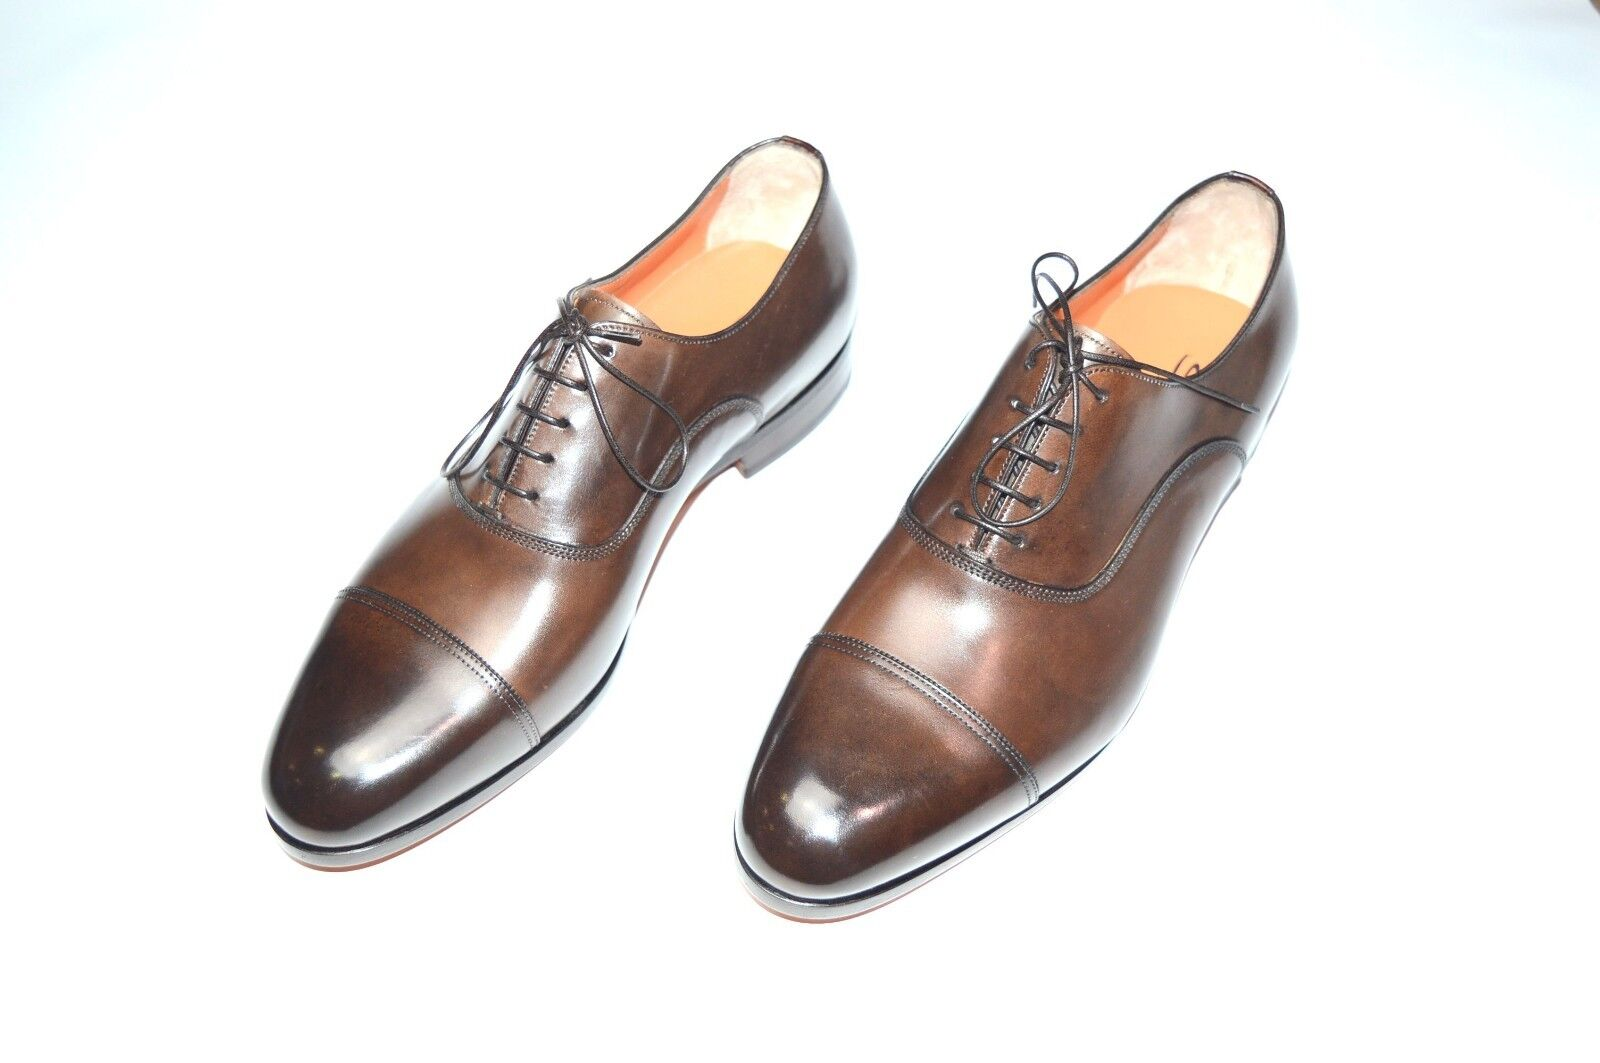 NEW SANTONI Dress Leather shoes  SIZE Eu 44.5 Uk 10.5 Us 11.5 (20R)